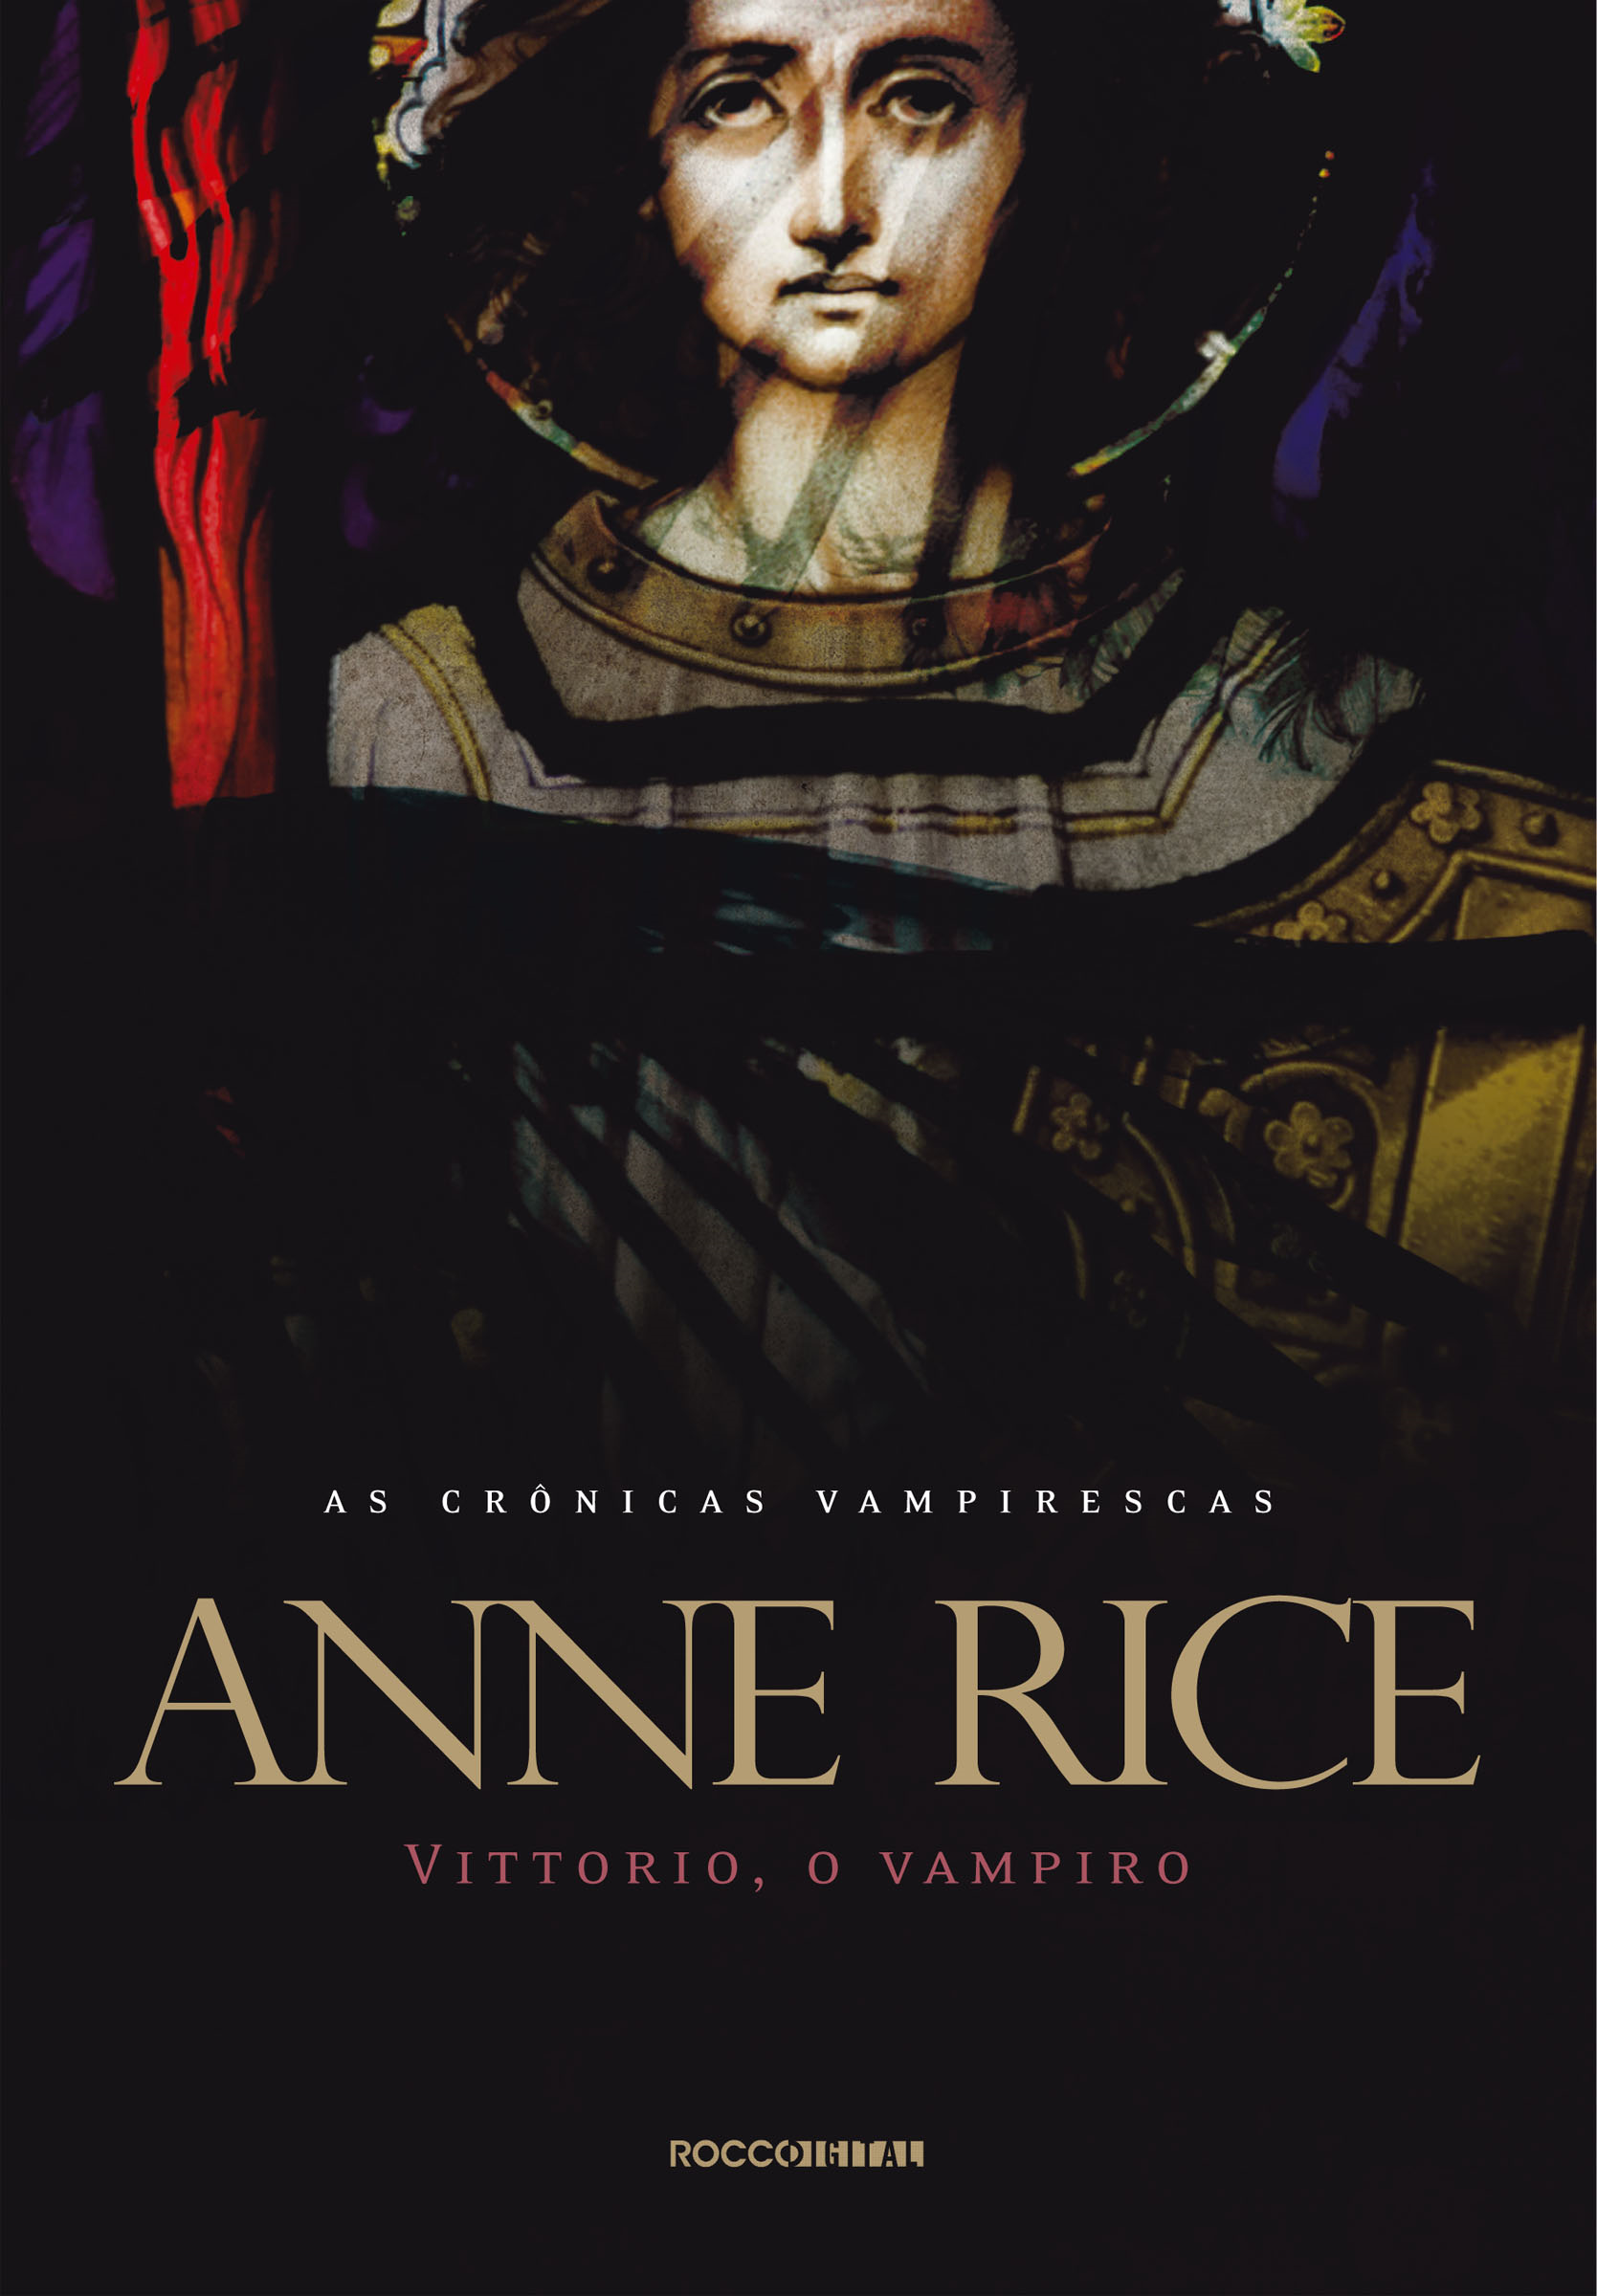 anne rice essays Read this english essay and over 88,000 other research documents what inspires anne rice what inspires anne rice anne rice is an amazing and well-known author, famous for her novels and short stories.